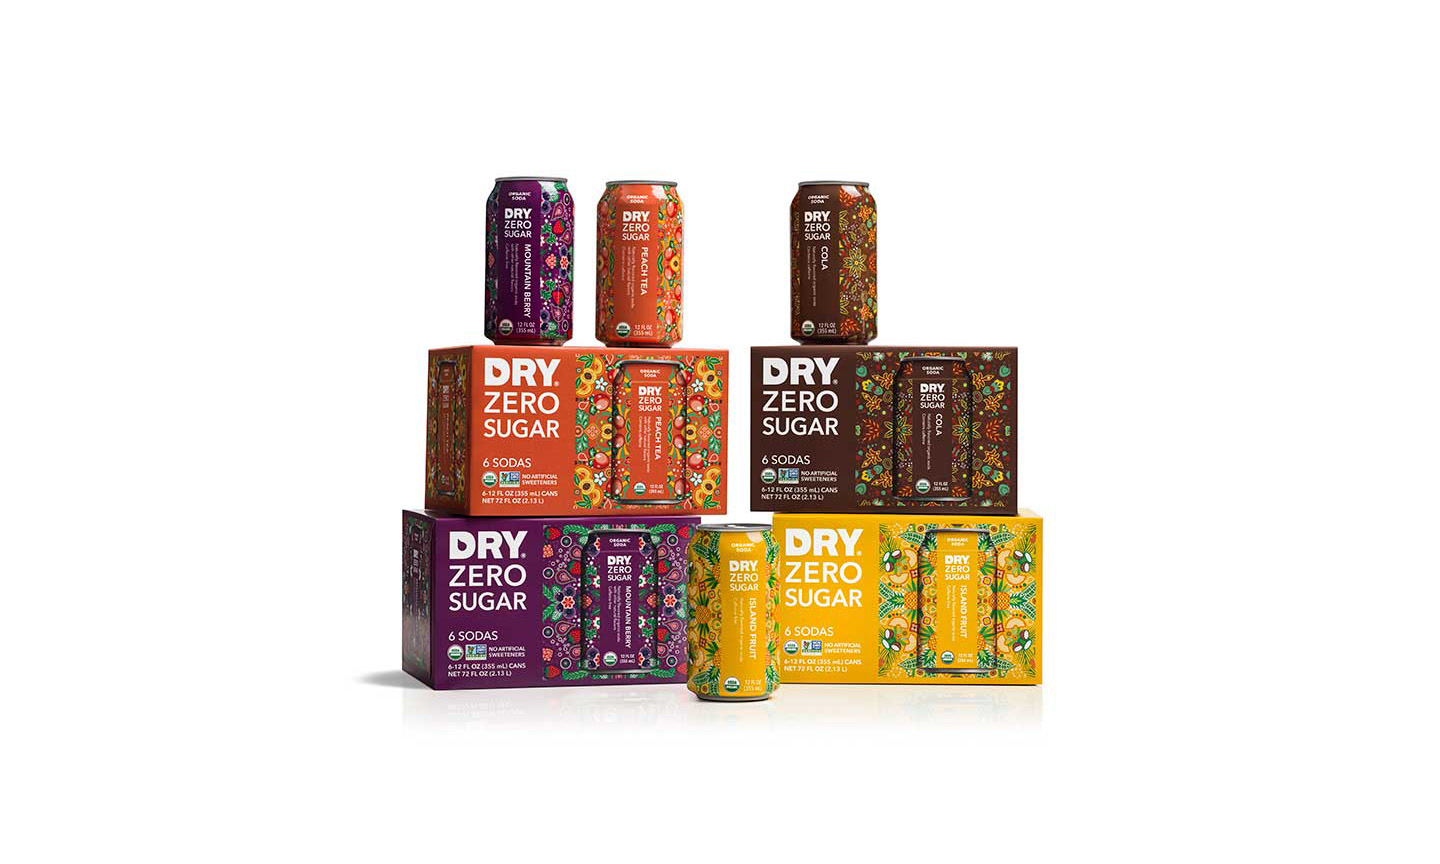 Dry Zero Sugar drinks and packaging